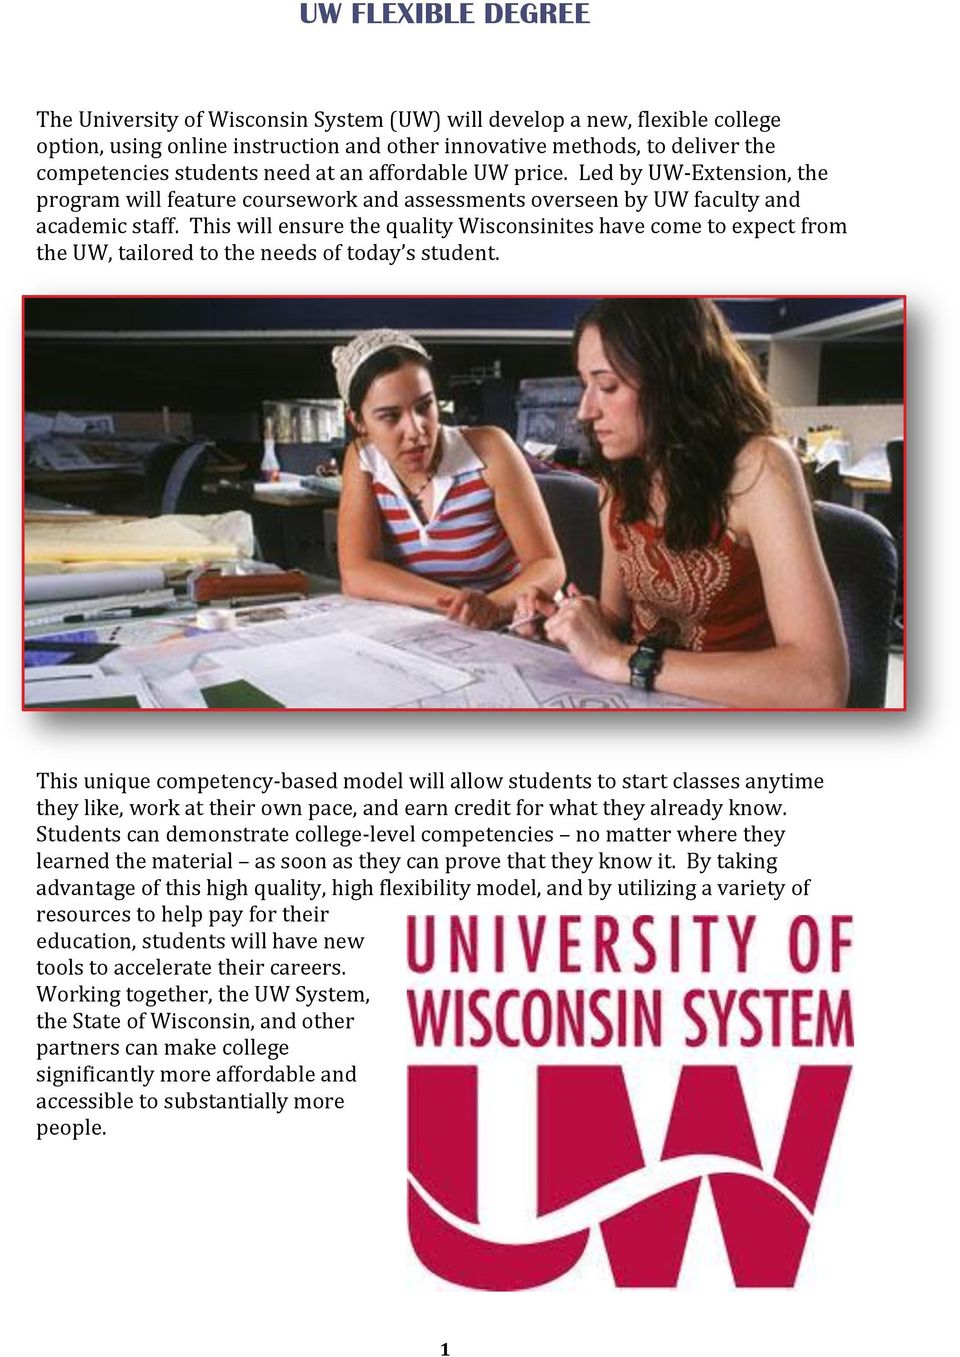 This will ensure the quality Wisconsinites have come to expect from the UW, tailored to the needs of today s student.